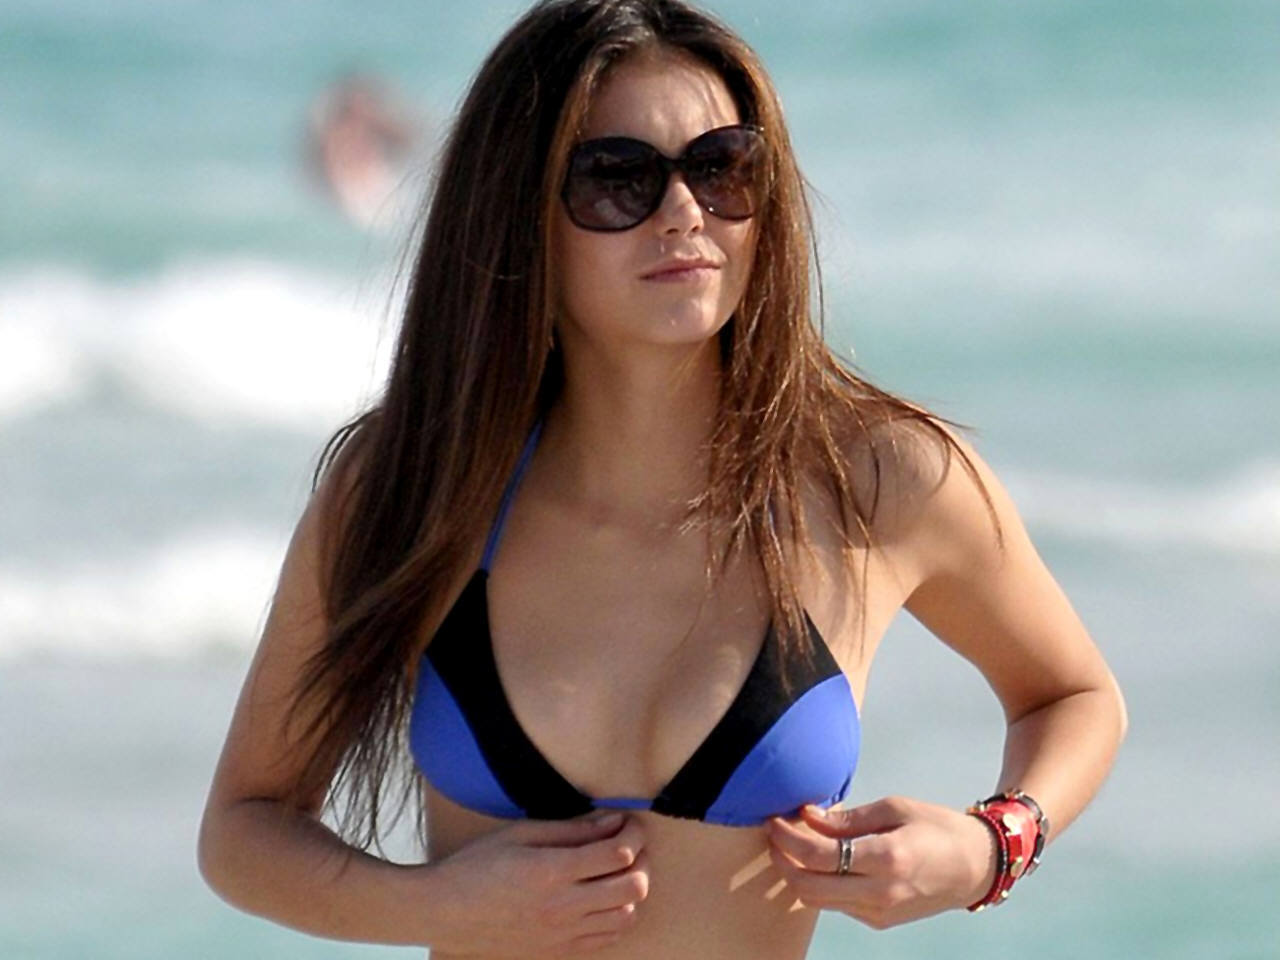 Boobs Nina Dobrev nudes (83 photos), Topless, Sideboobs, Feet, cameltoe 2019